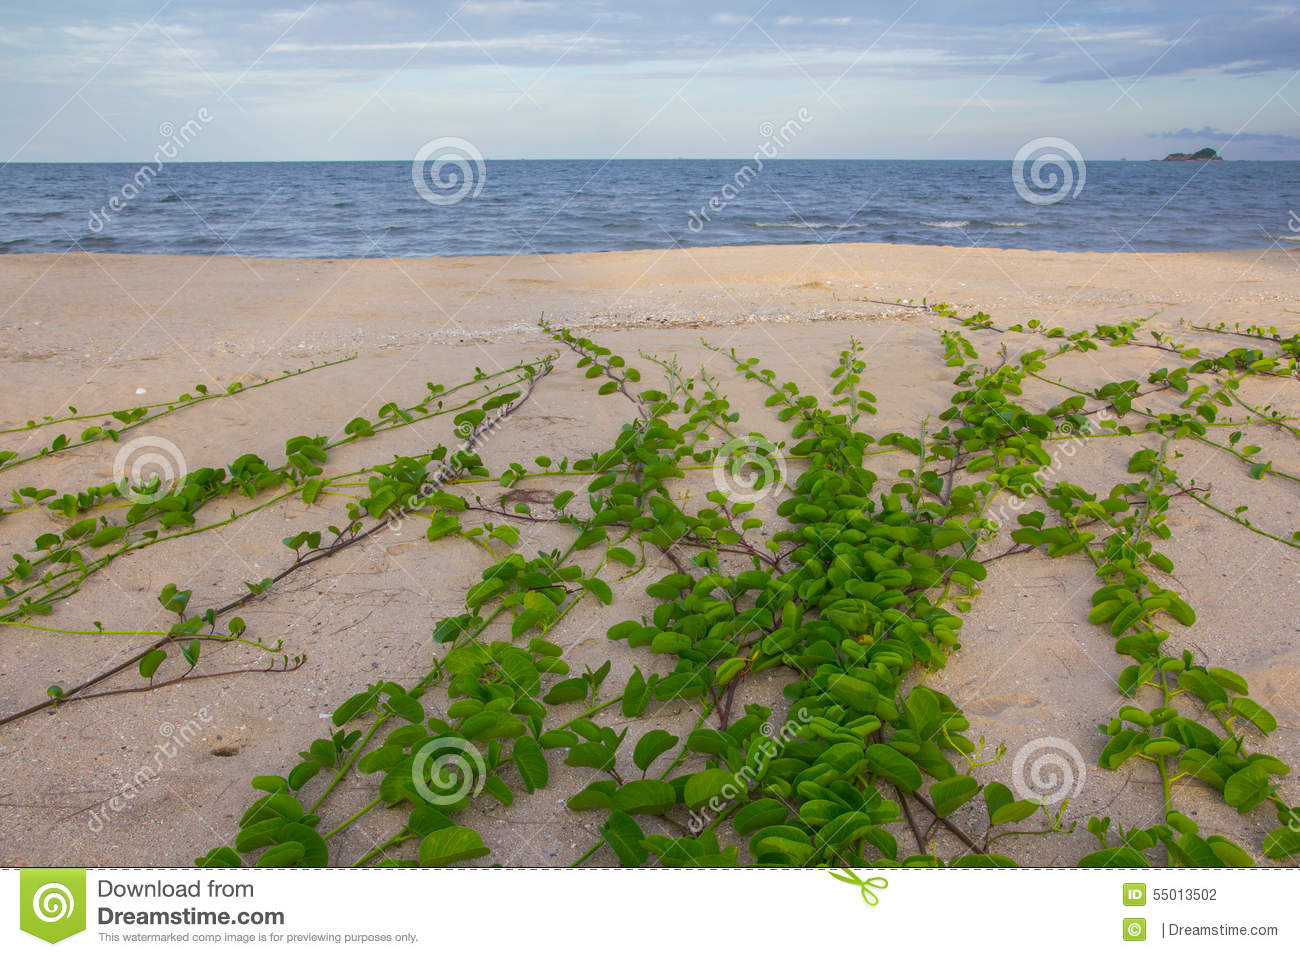 Green plants in the Beach